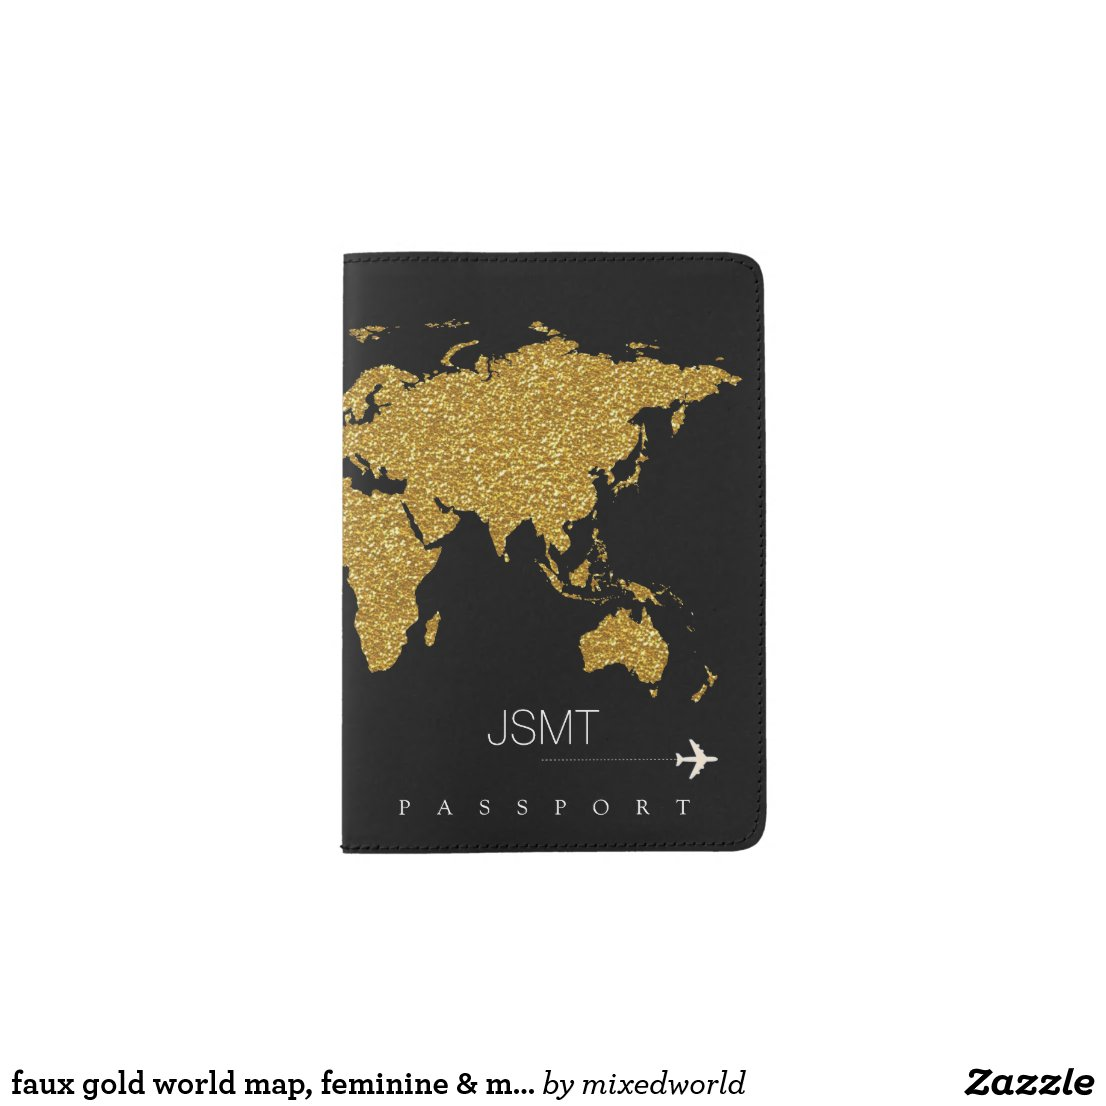 faux gold world map, feminine & modern travel passport holder